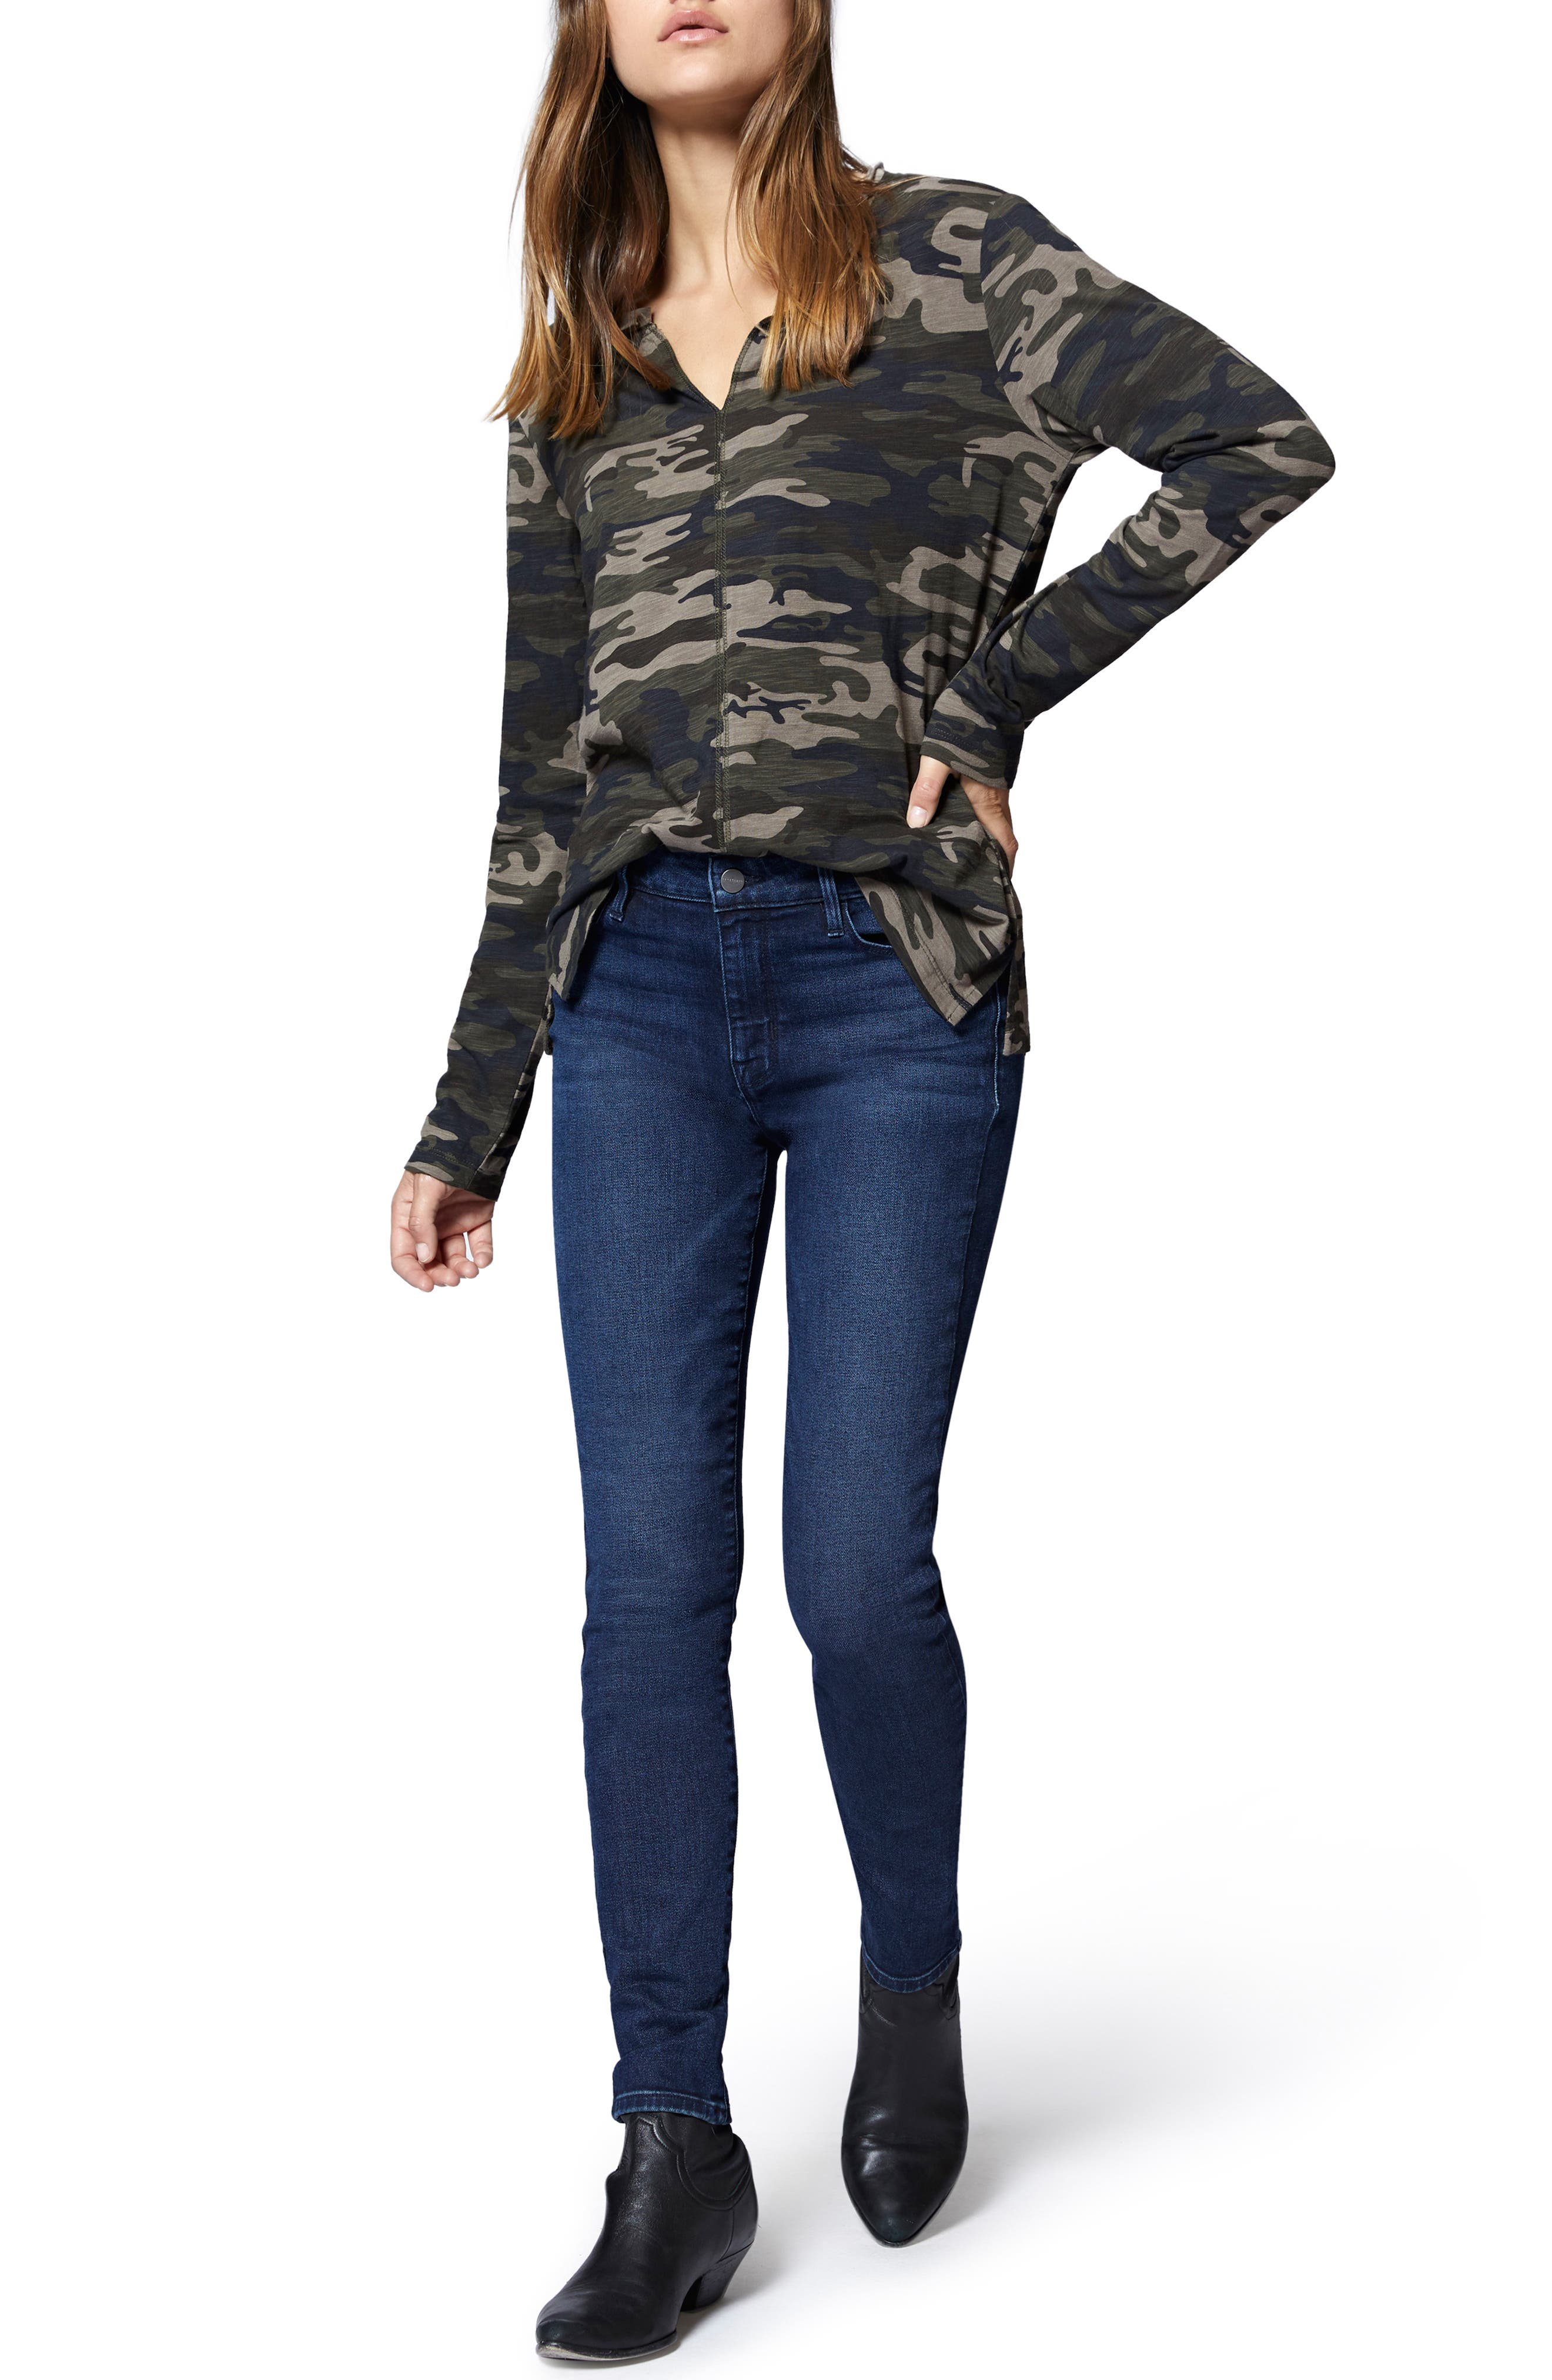 Ives Long Sleeve Camo Tee,                             Alternate thumbnail 4, color,                             HUMAN NATURE CAMO